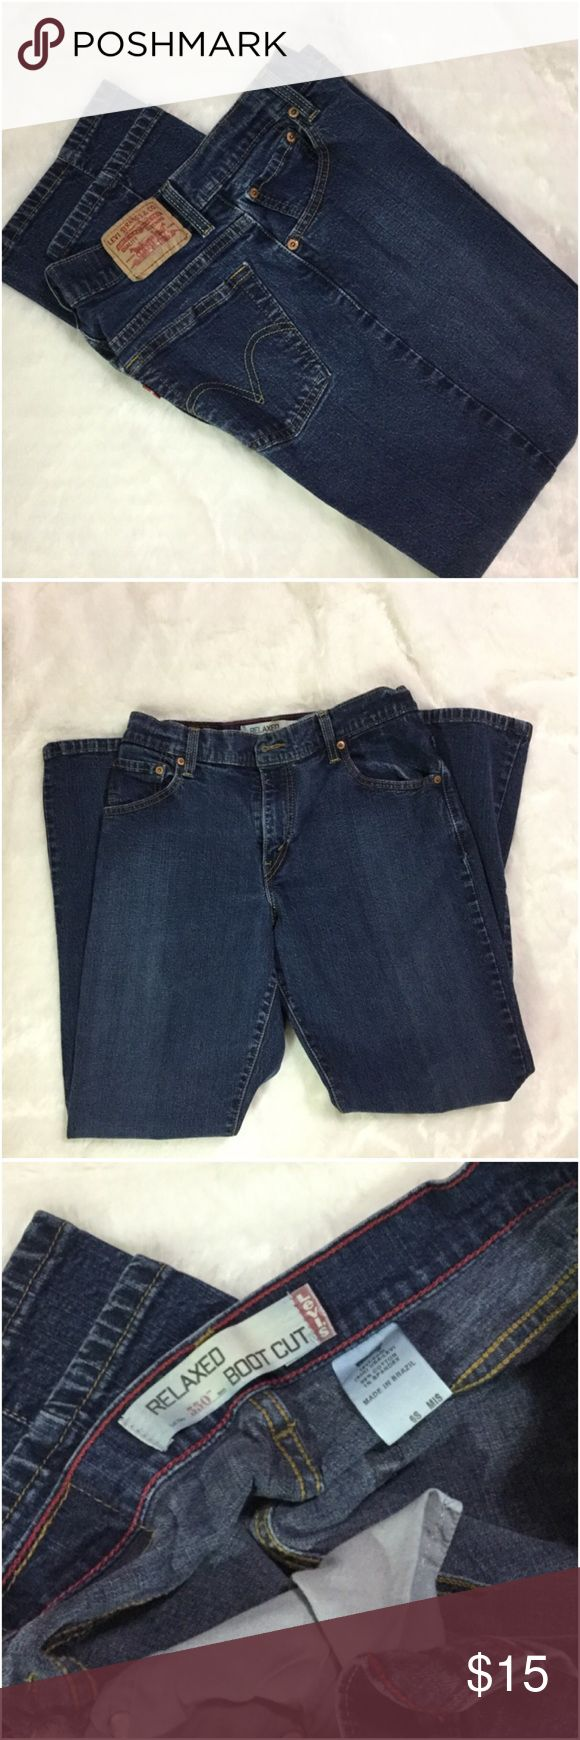 Levi's 550 relaxed boot cut jeans 29.5 inch inseam. 30 inch waist. Some fading but lots of life left. Boot cut jeans are always flattering! Levi's Jeans Boot Cut